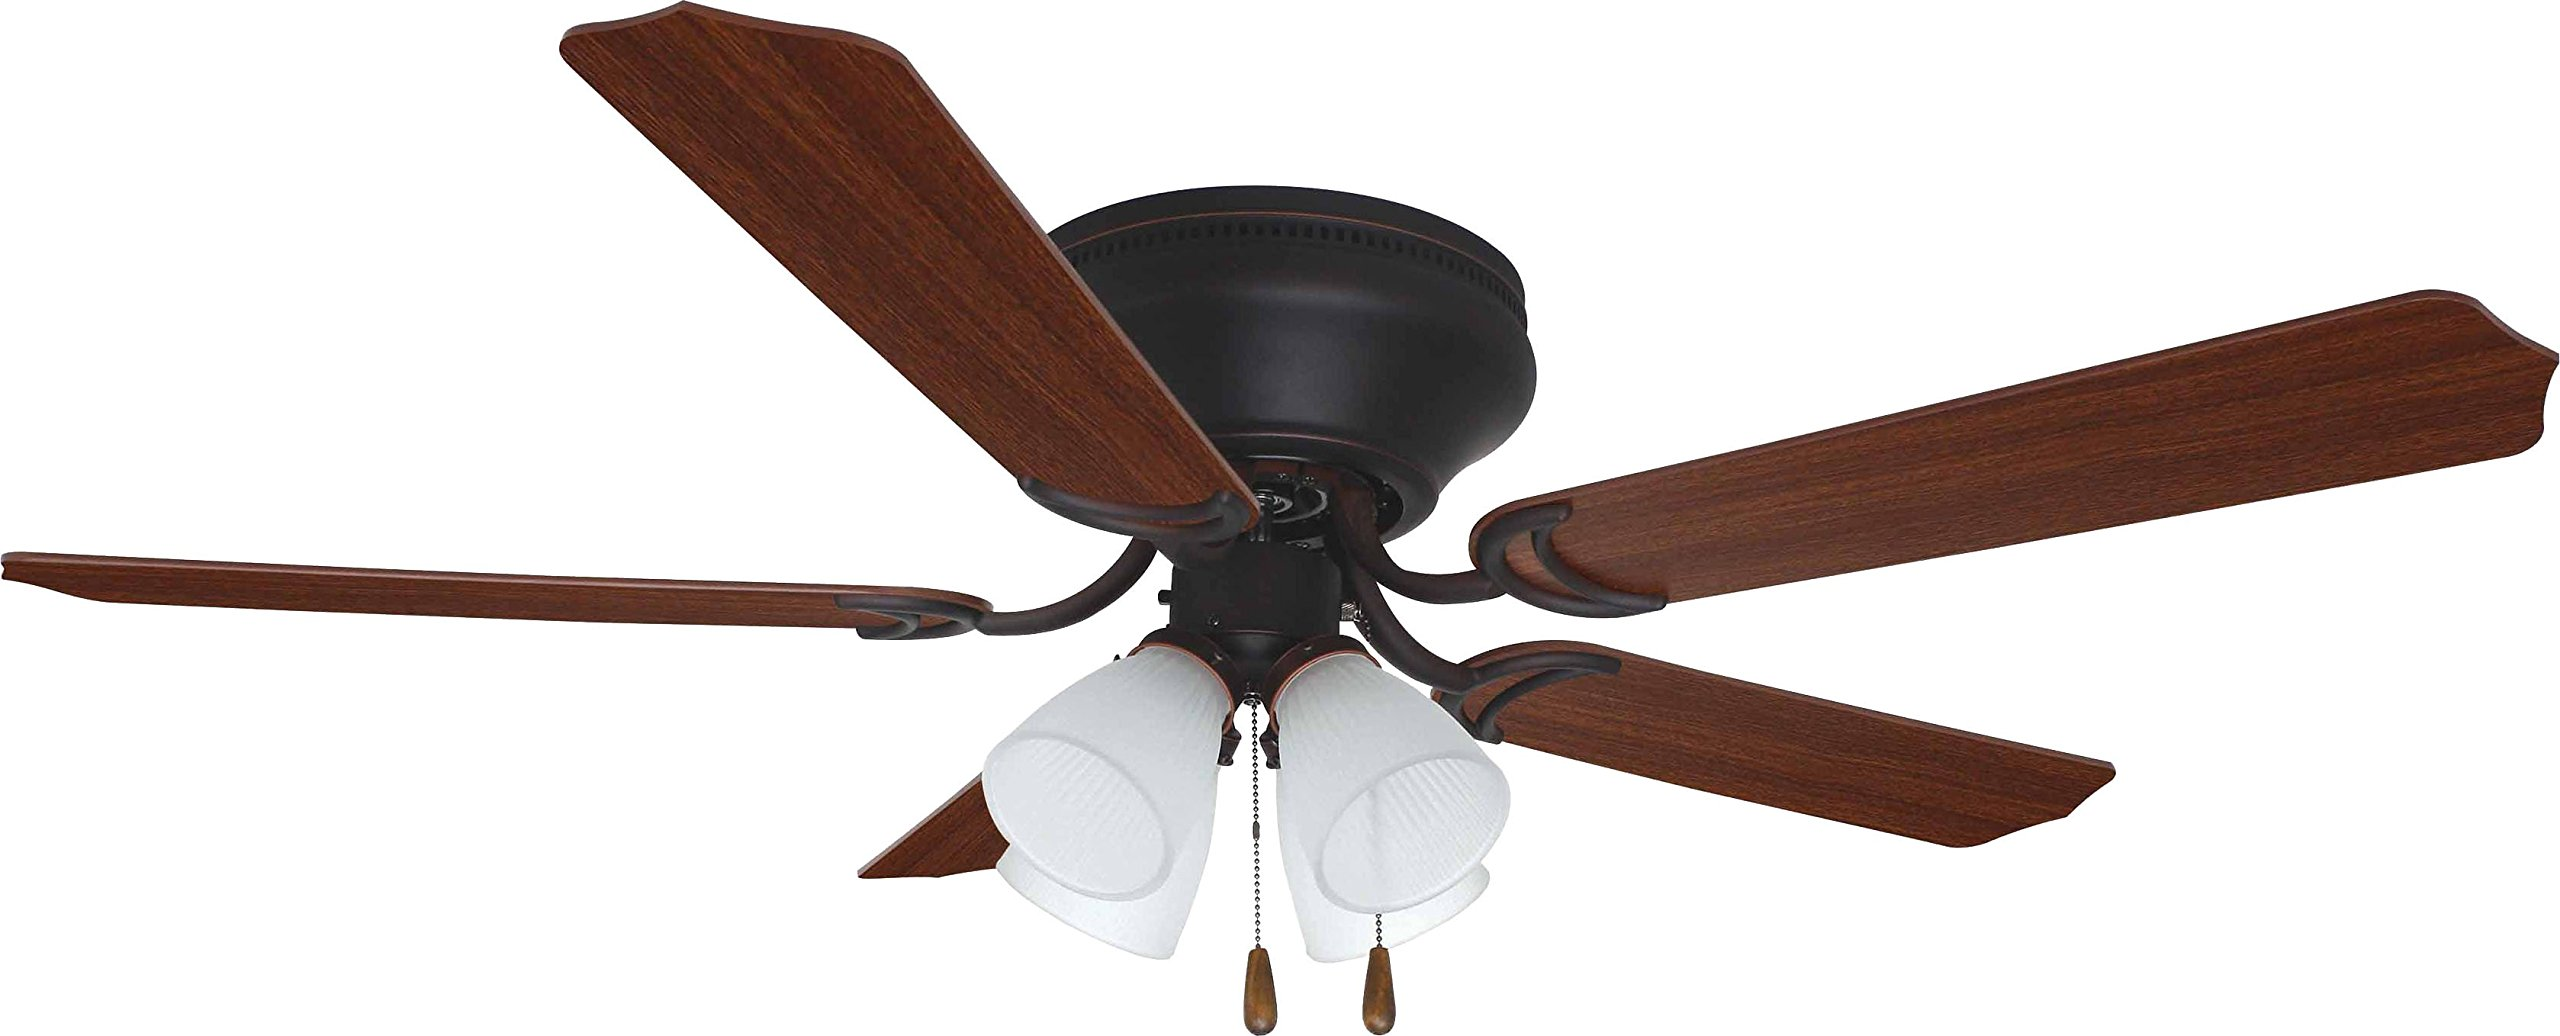 Litex BRC52ORB5L Schuster Collection 52-Inch Ceiling Fan with Five Reversible Cherry/Mahogany Blades and Four Light kit with Frosted Glass by Litex